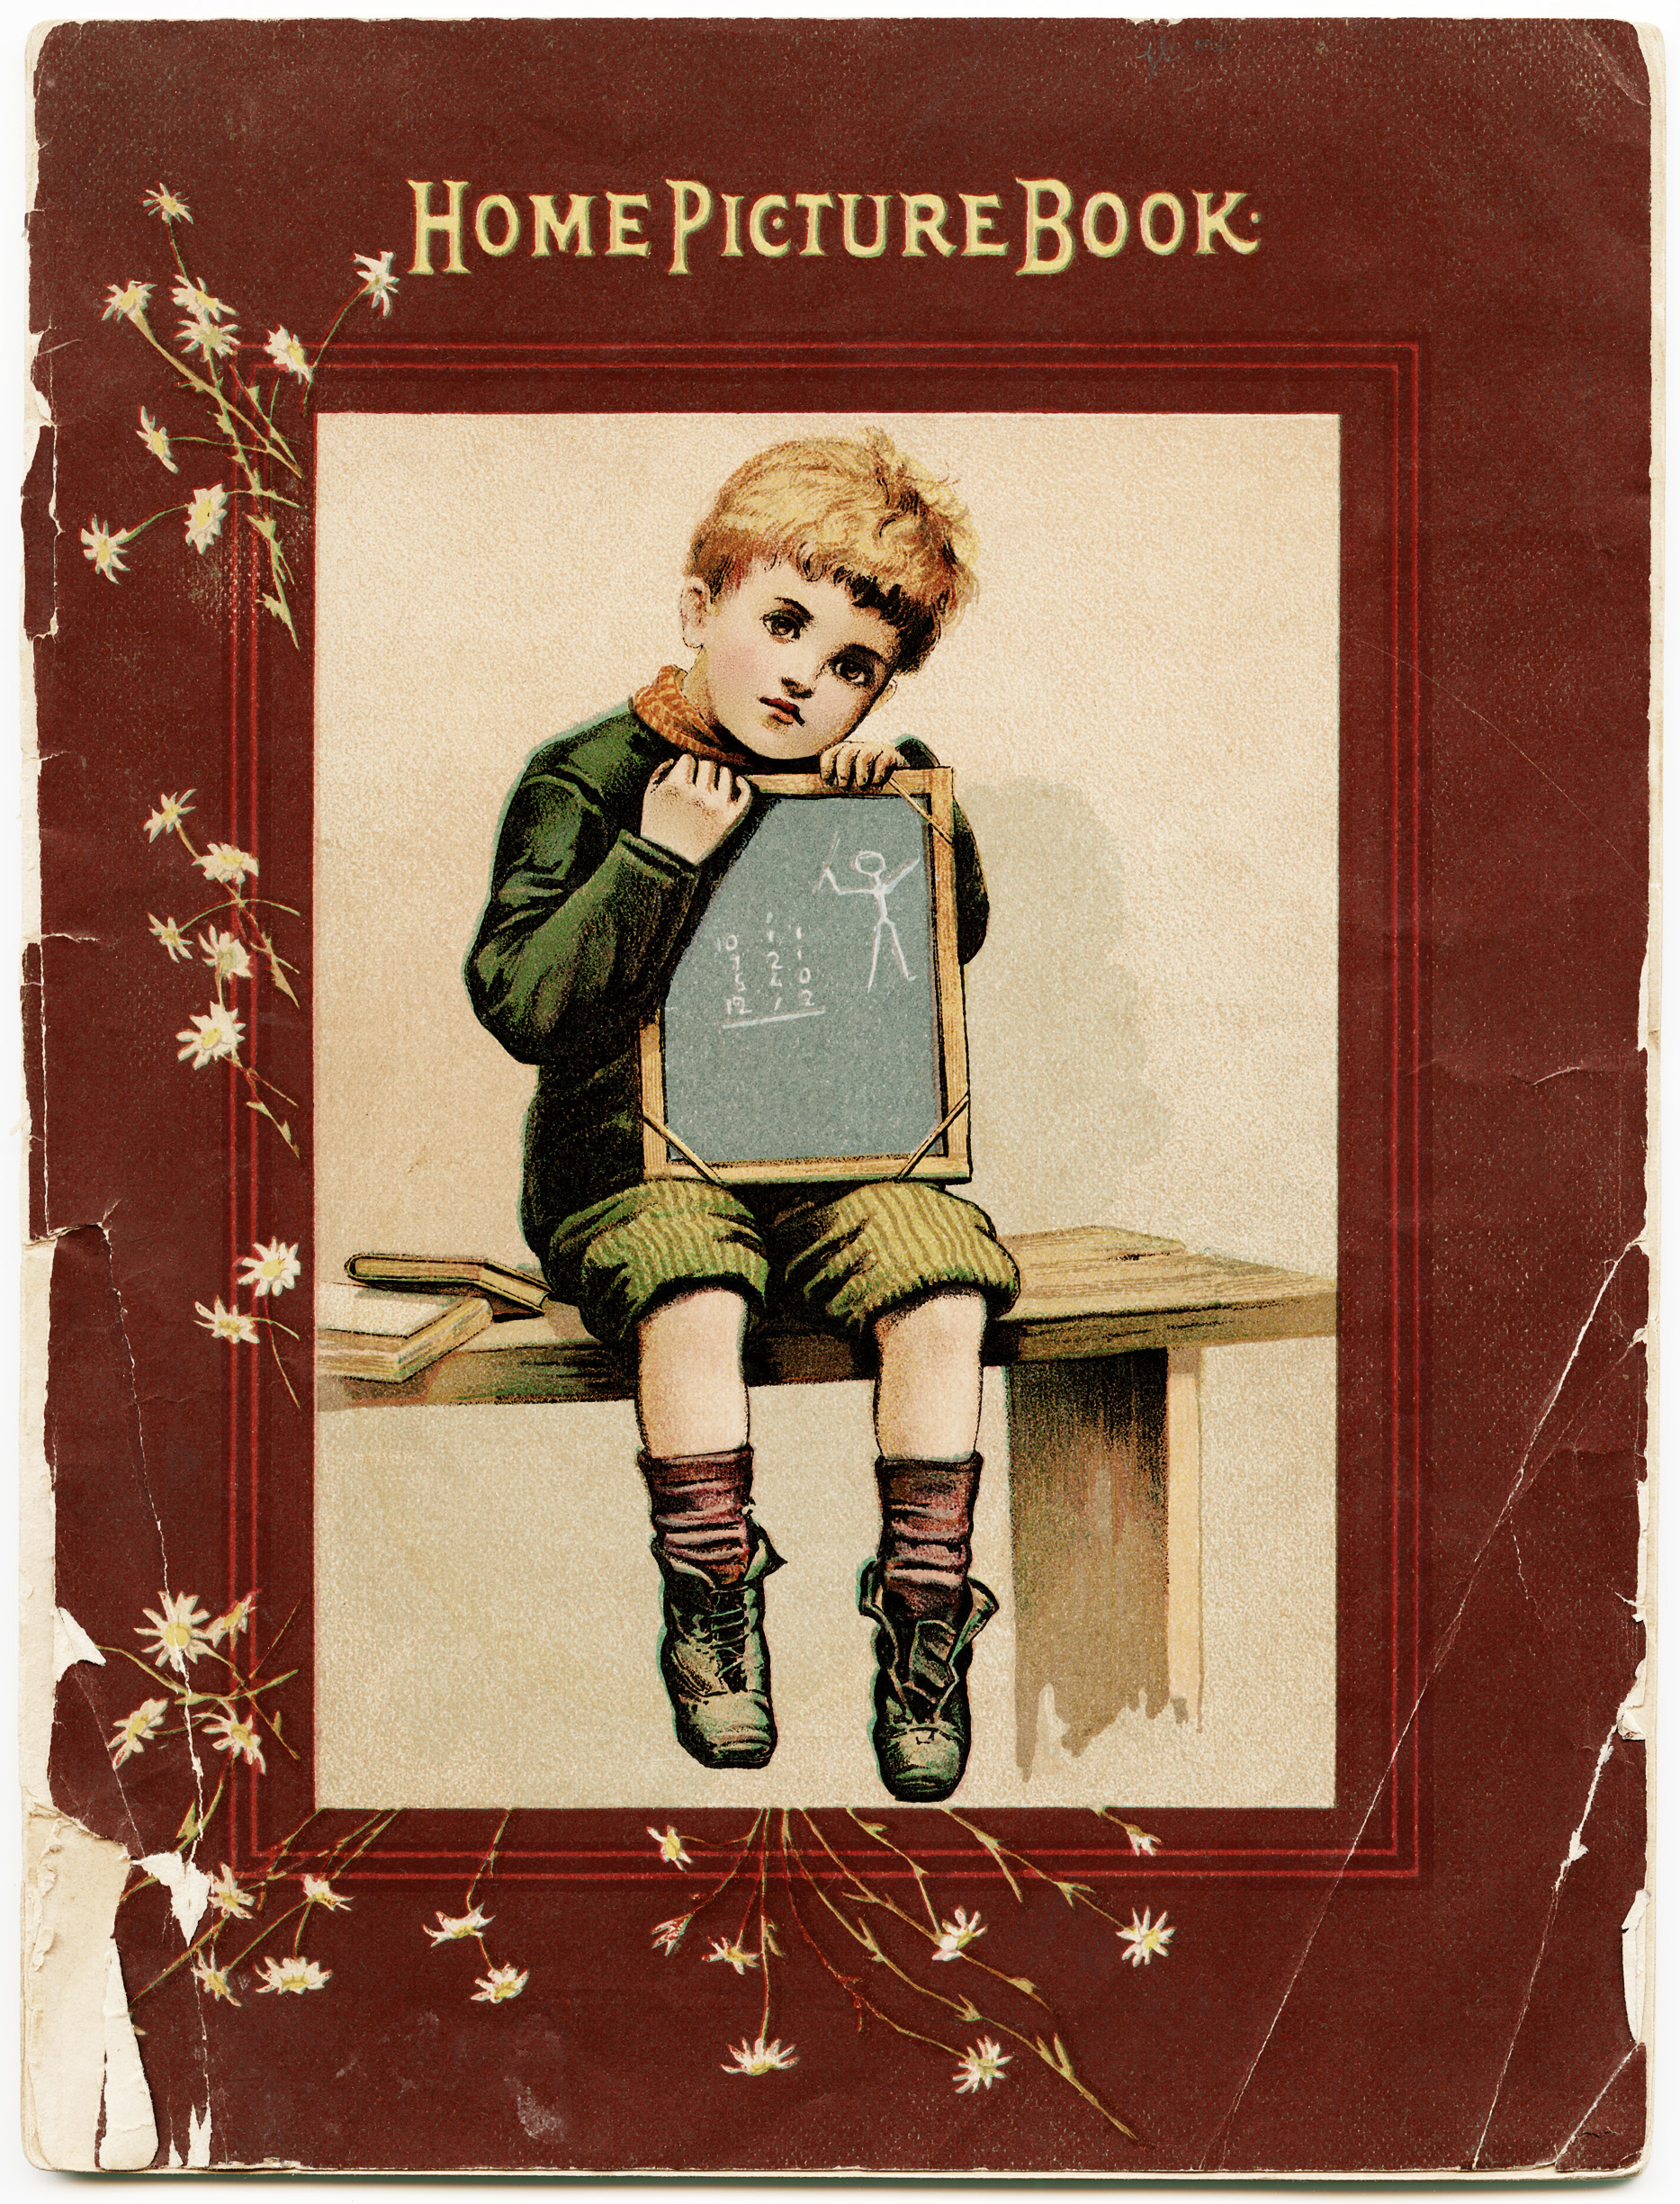 Tattered Book Cover Free Vintage Image Old Design Shop Blog